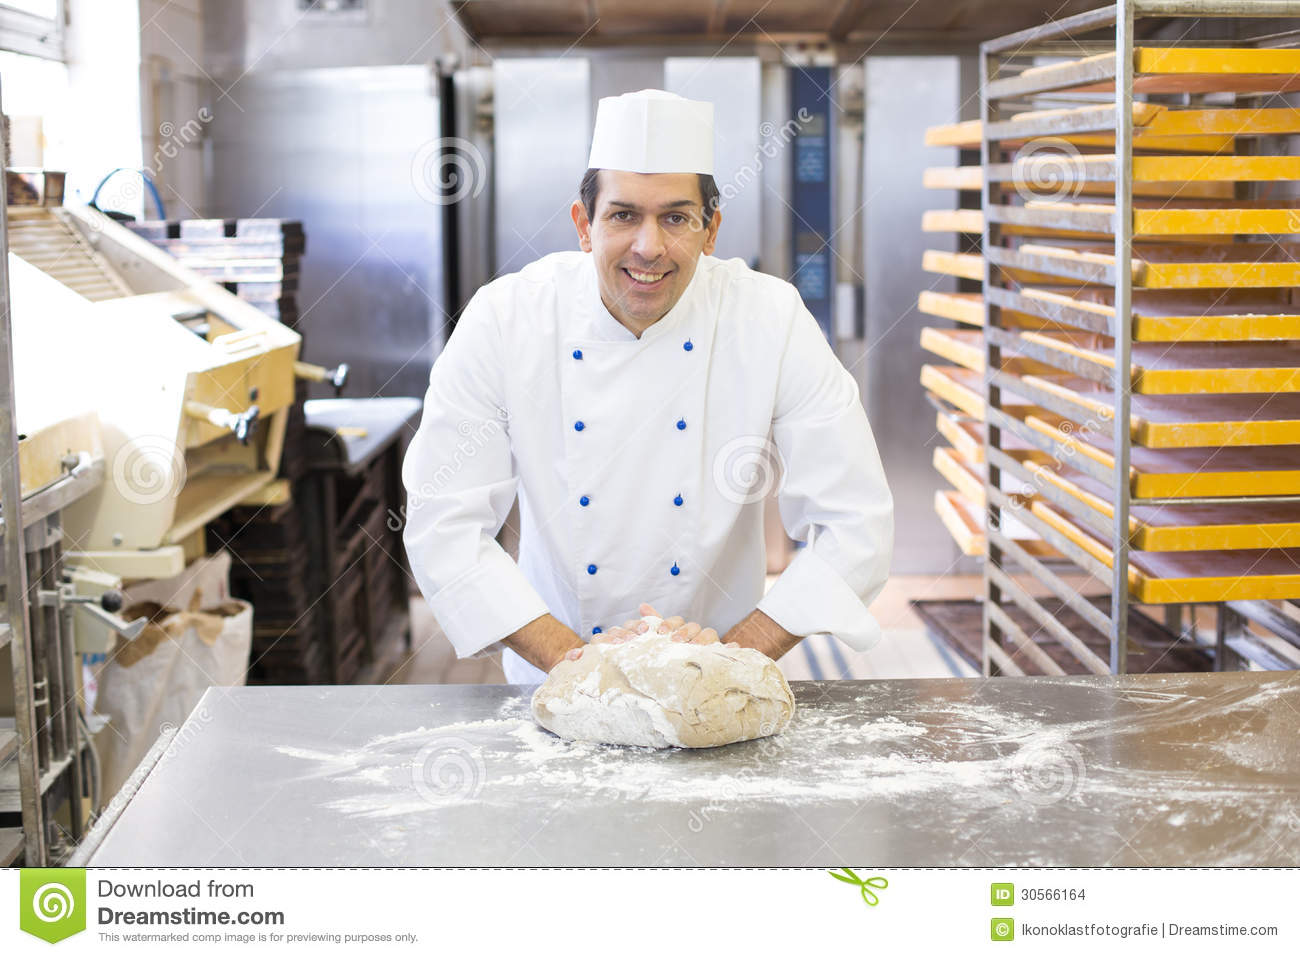 Baker Kneading Dough In Bakery Stock Images - Image: 30566164